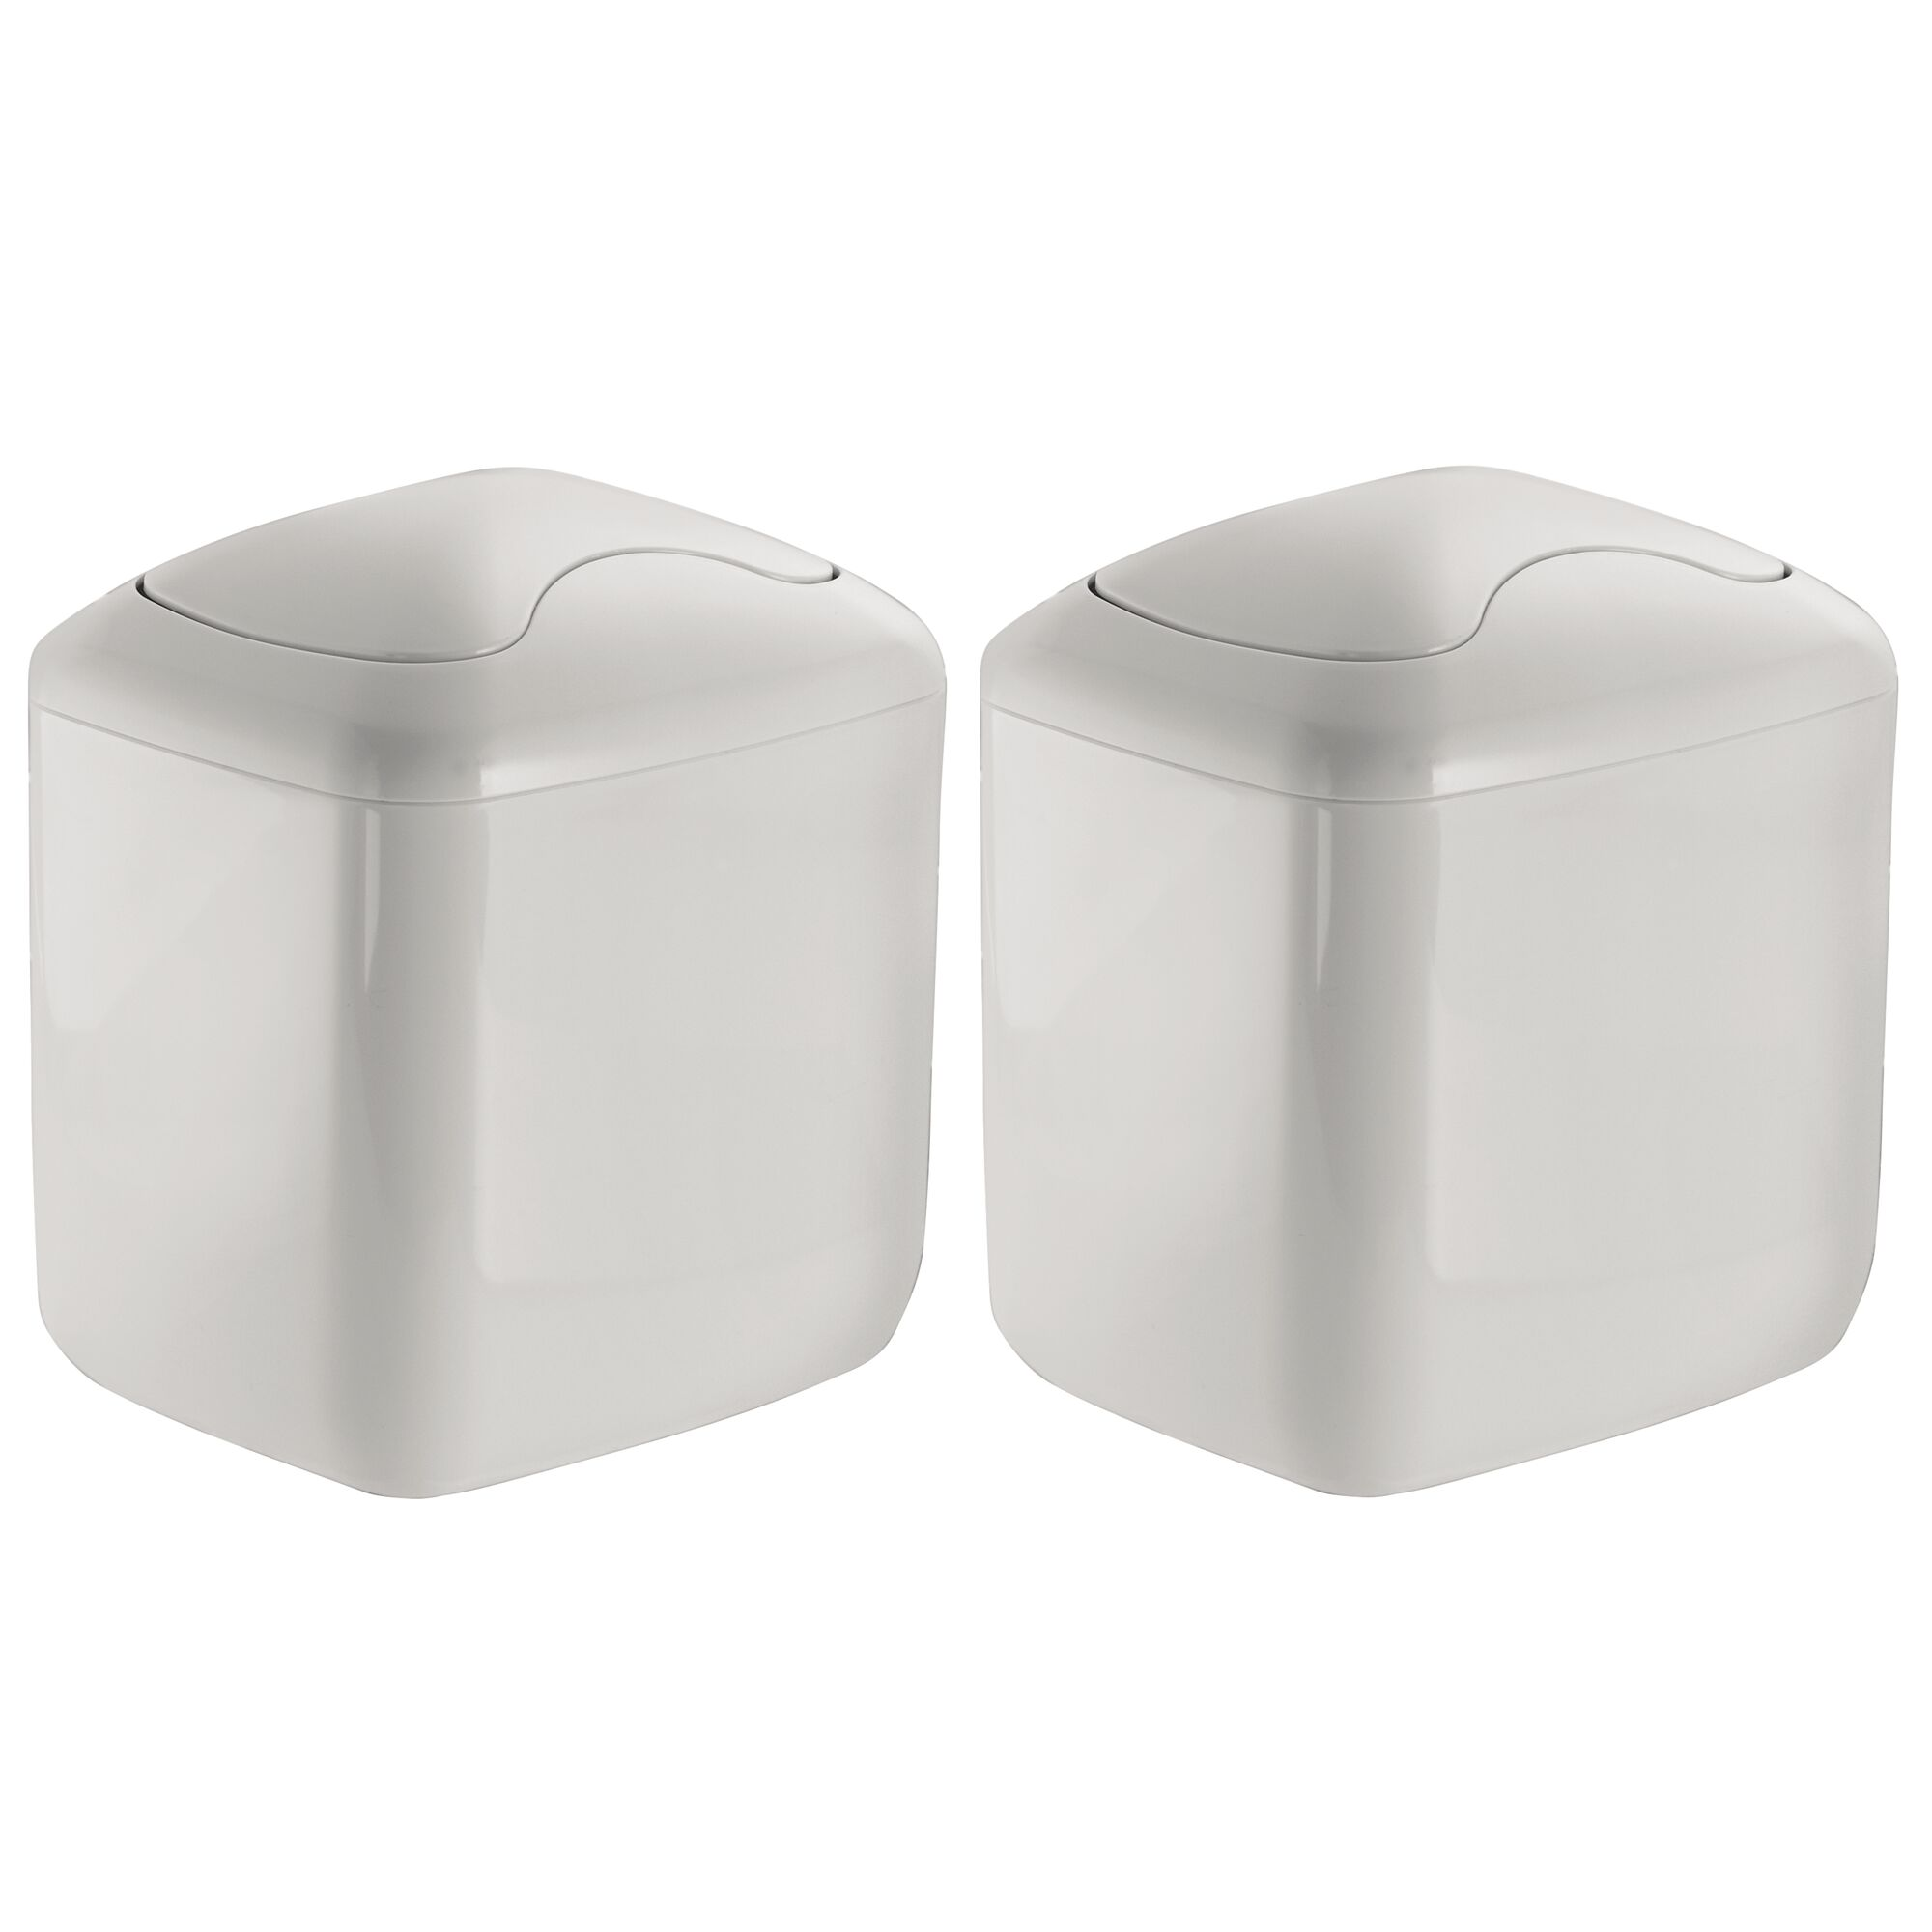 Mdesign Square Mini Trash Can With Swing Lid For Bath